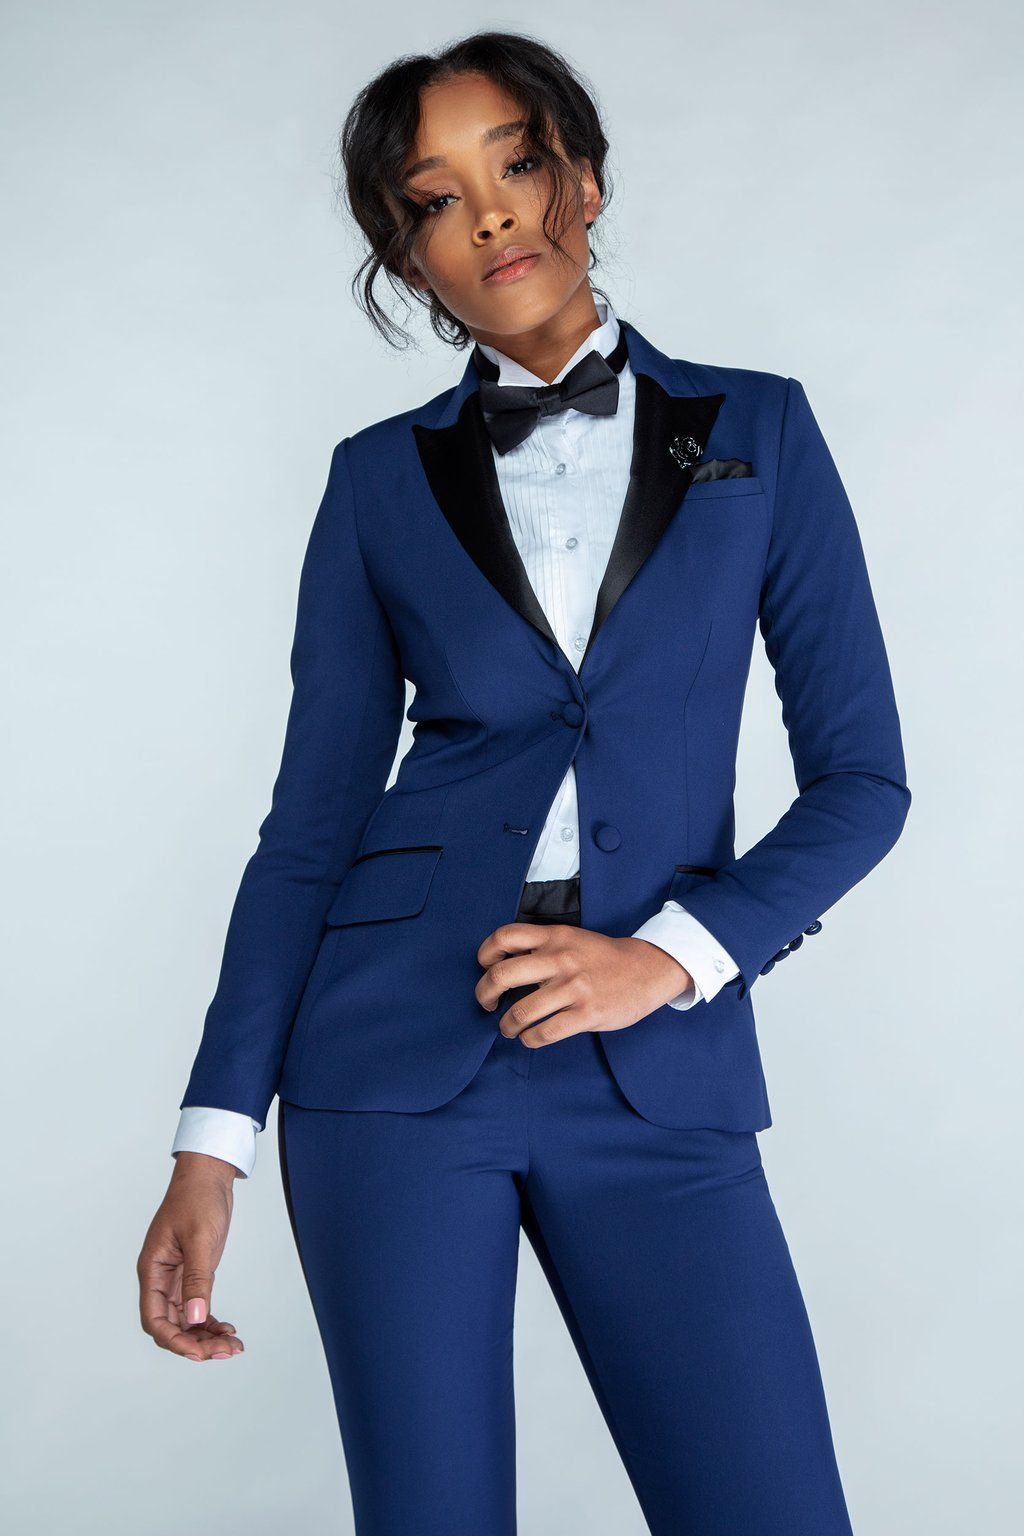 a2b572c1a78 Command inner strength and feel empowered at any occasion with the Black  Peak Lapel Women s Tuxedo Jacket from Little Black Tux. This feminine black  jacket ...